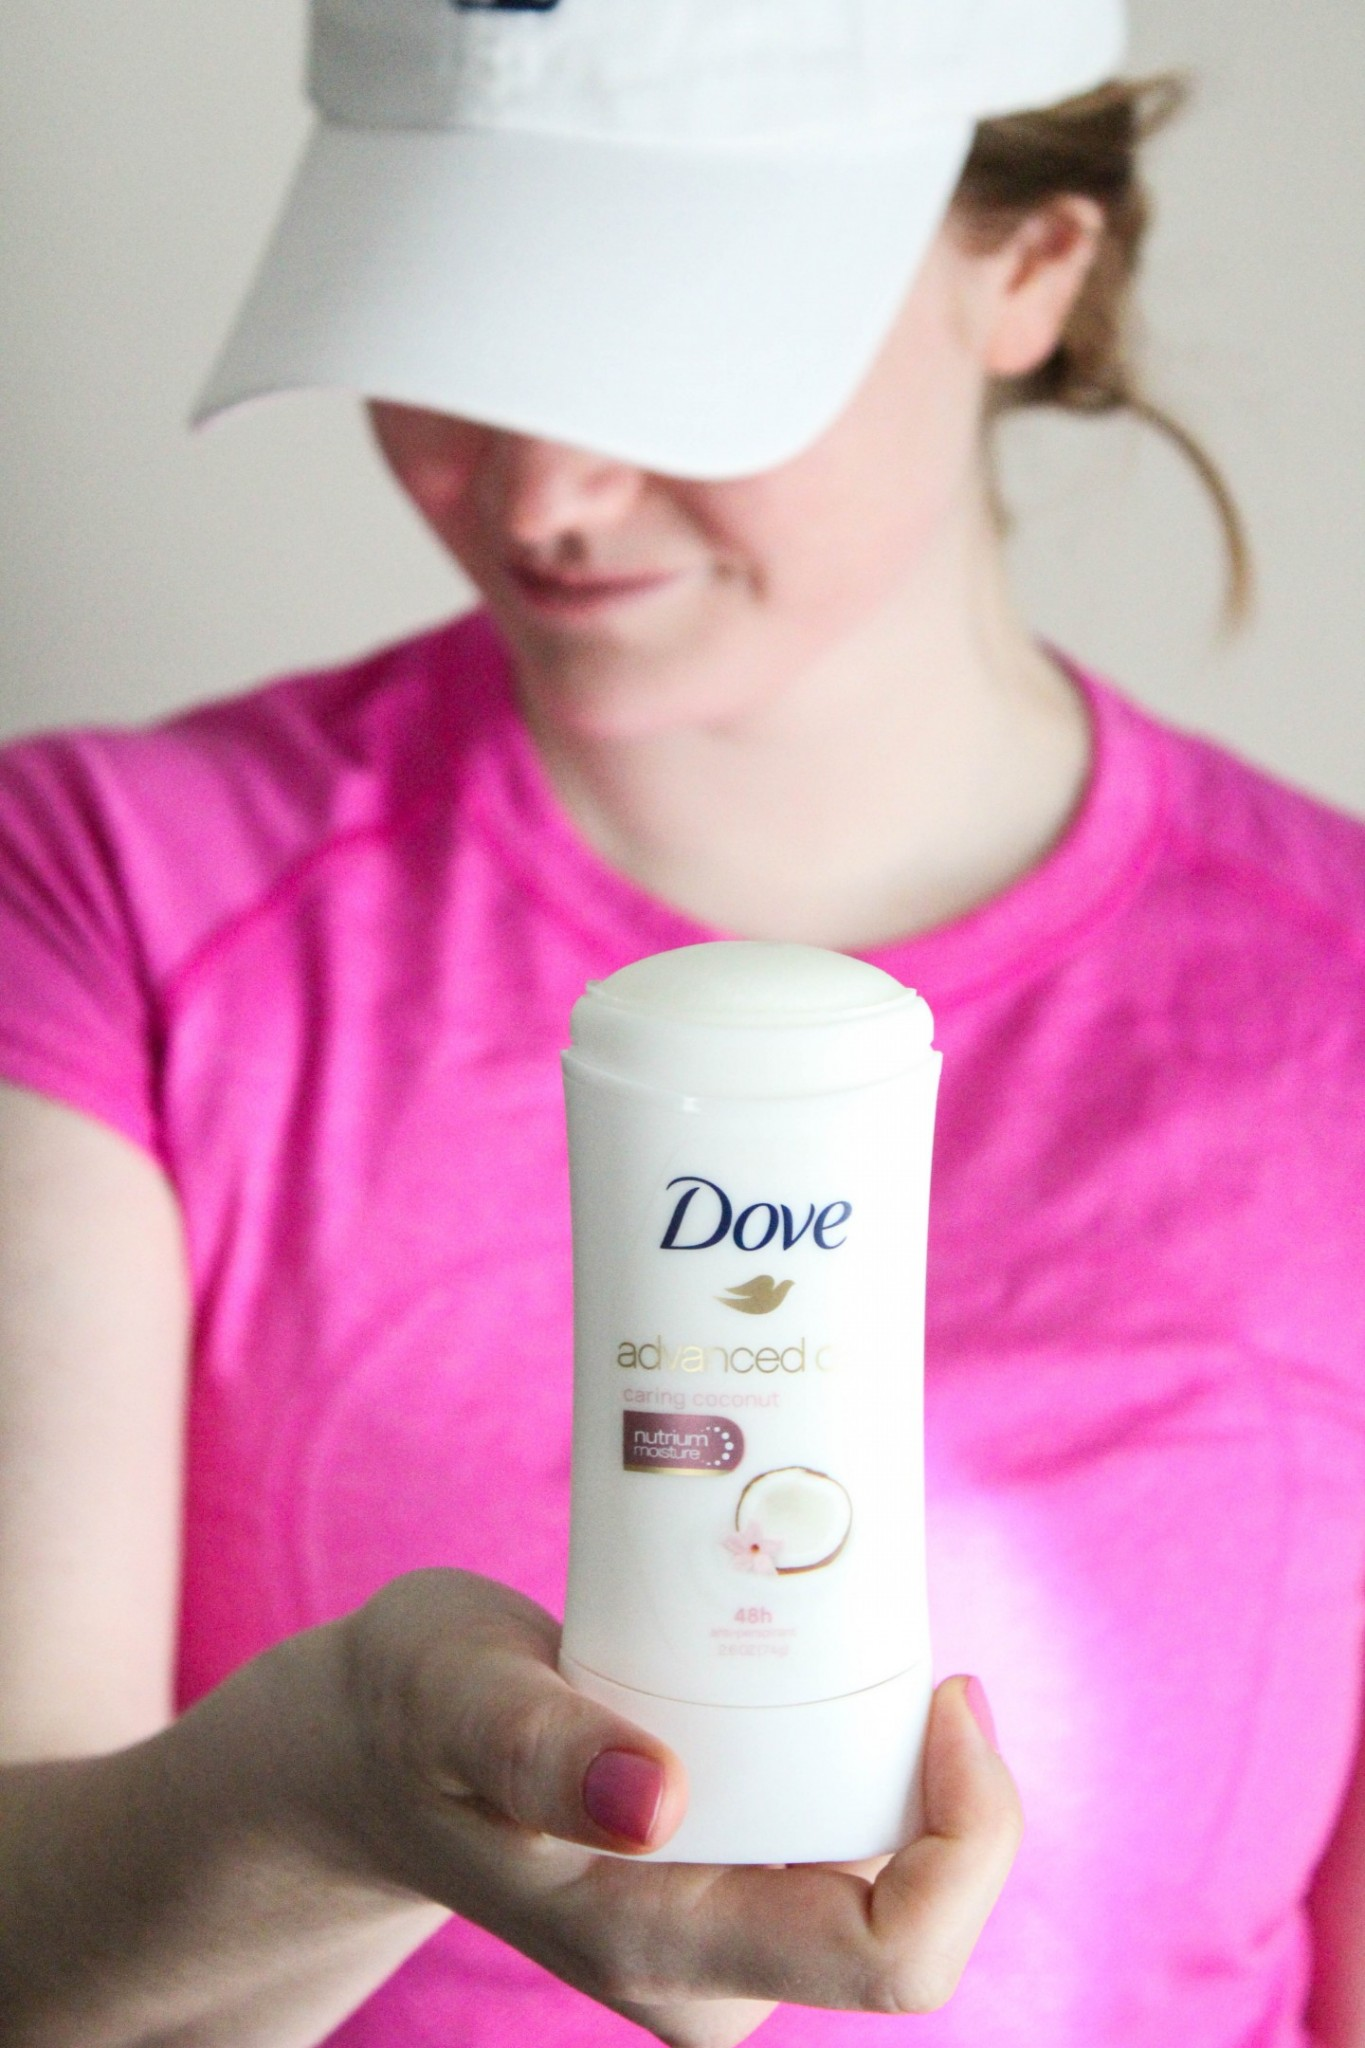 Lifestyle blogger Mollie Sheperdson shares whats in her gym bag with Dove Antiperspirant